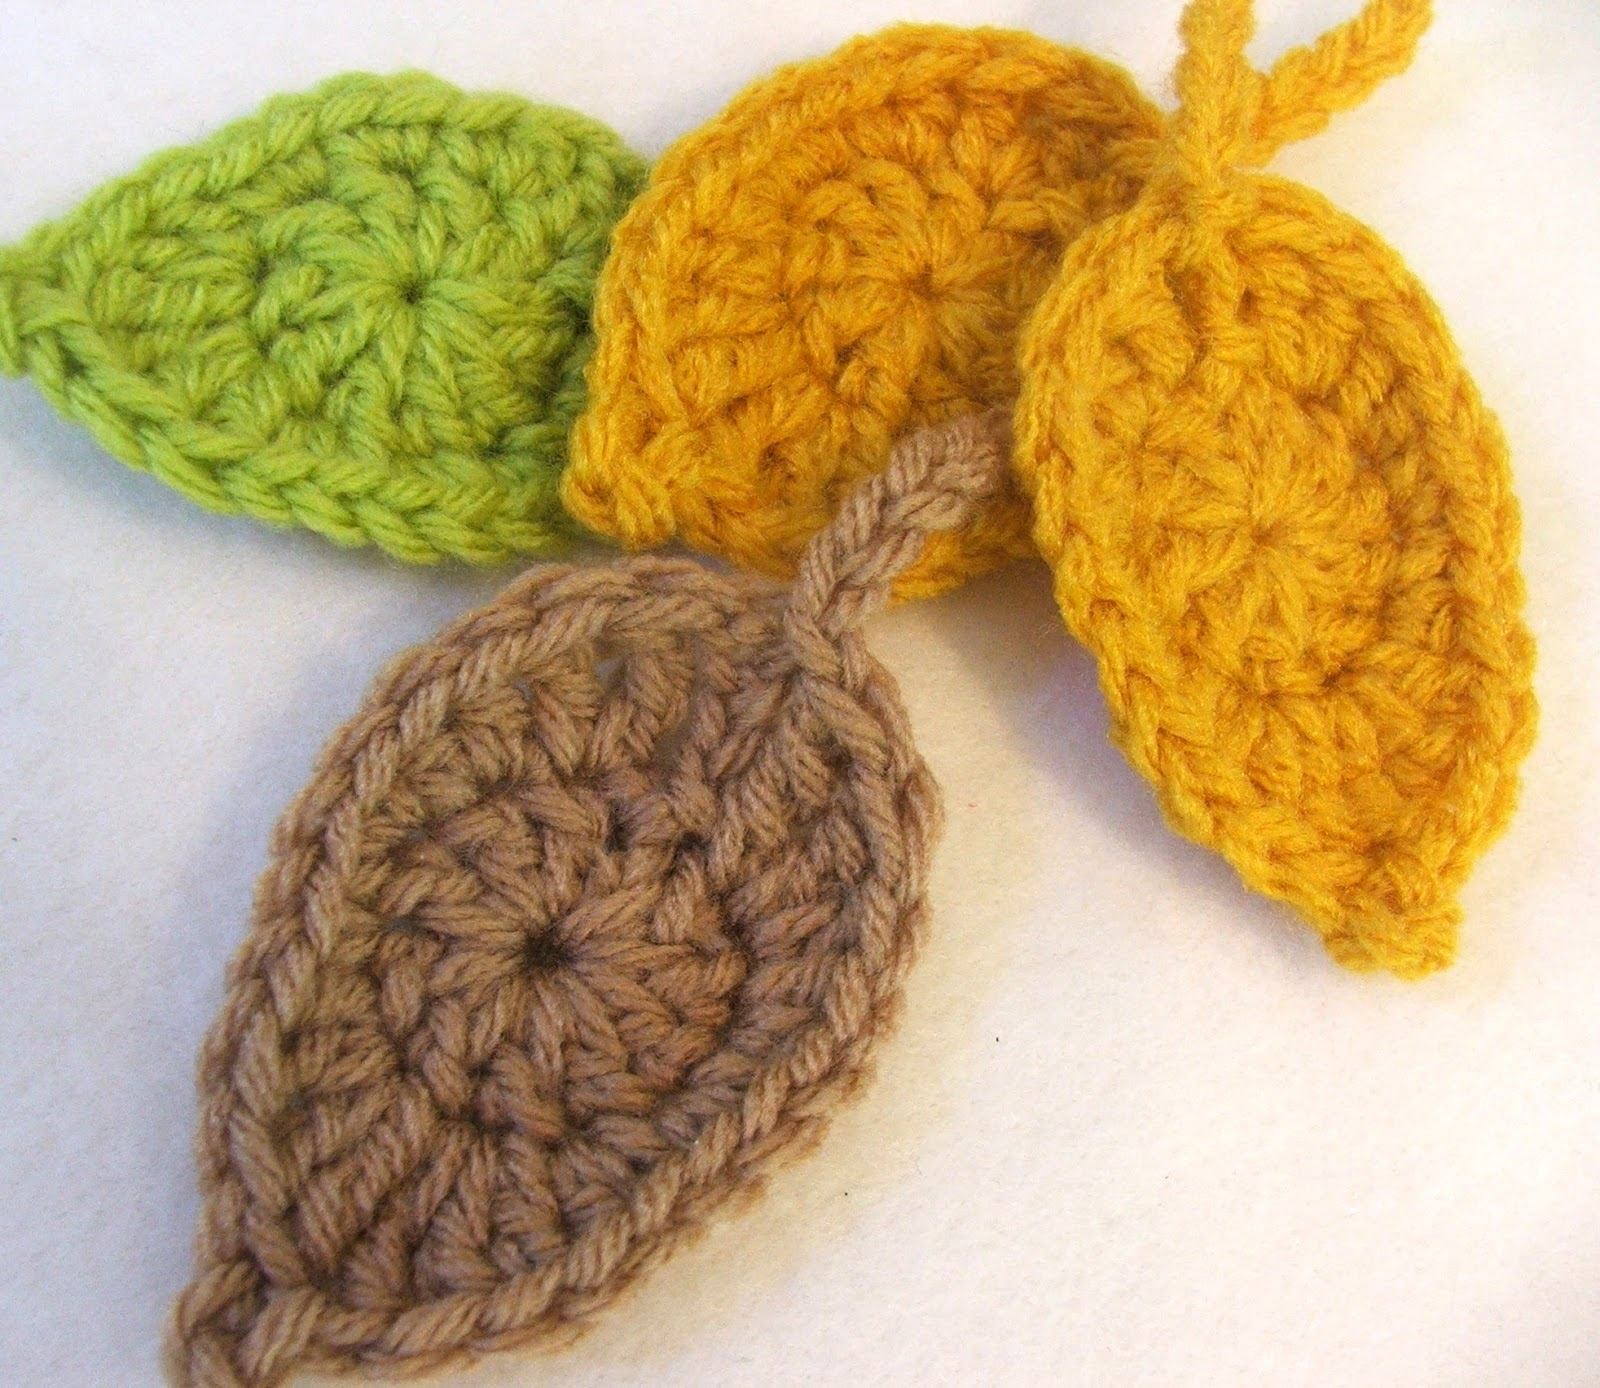 Susans Hippie Crochet: Free Simple Leaf Crochet Pattern - The Leaves ...